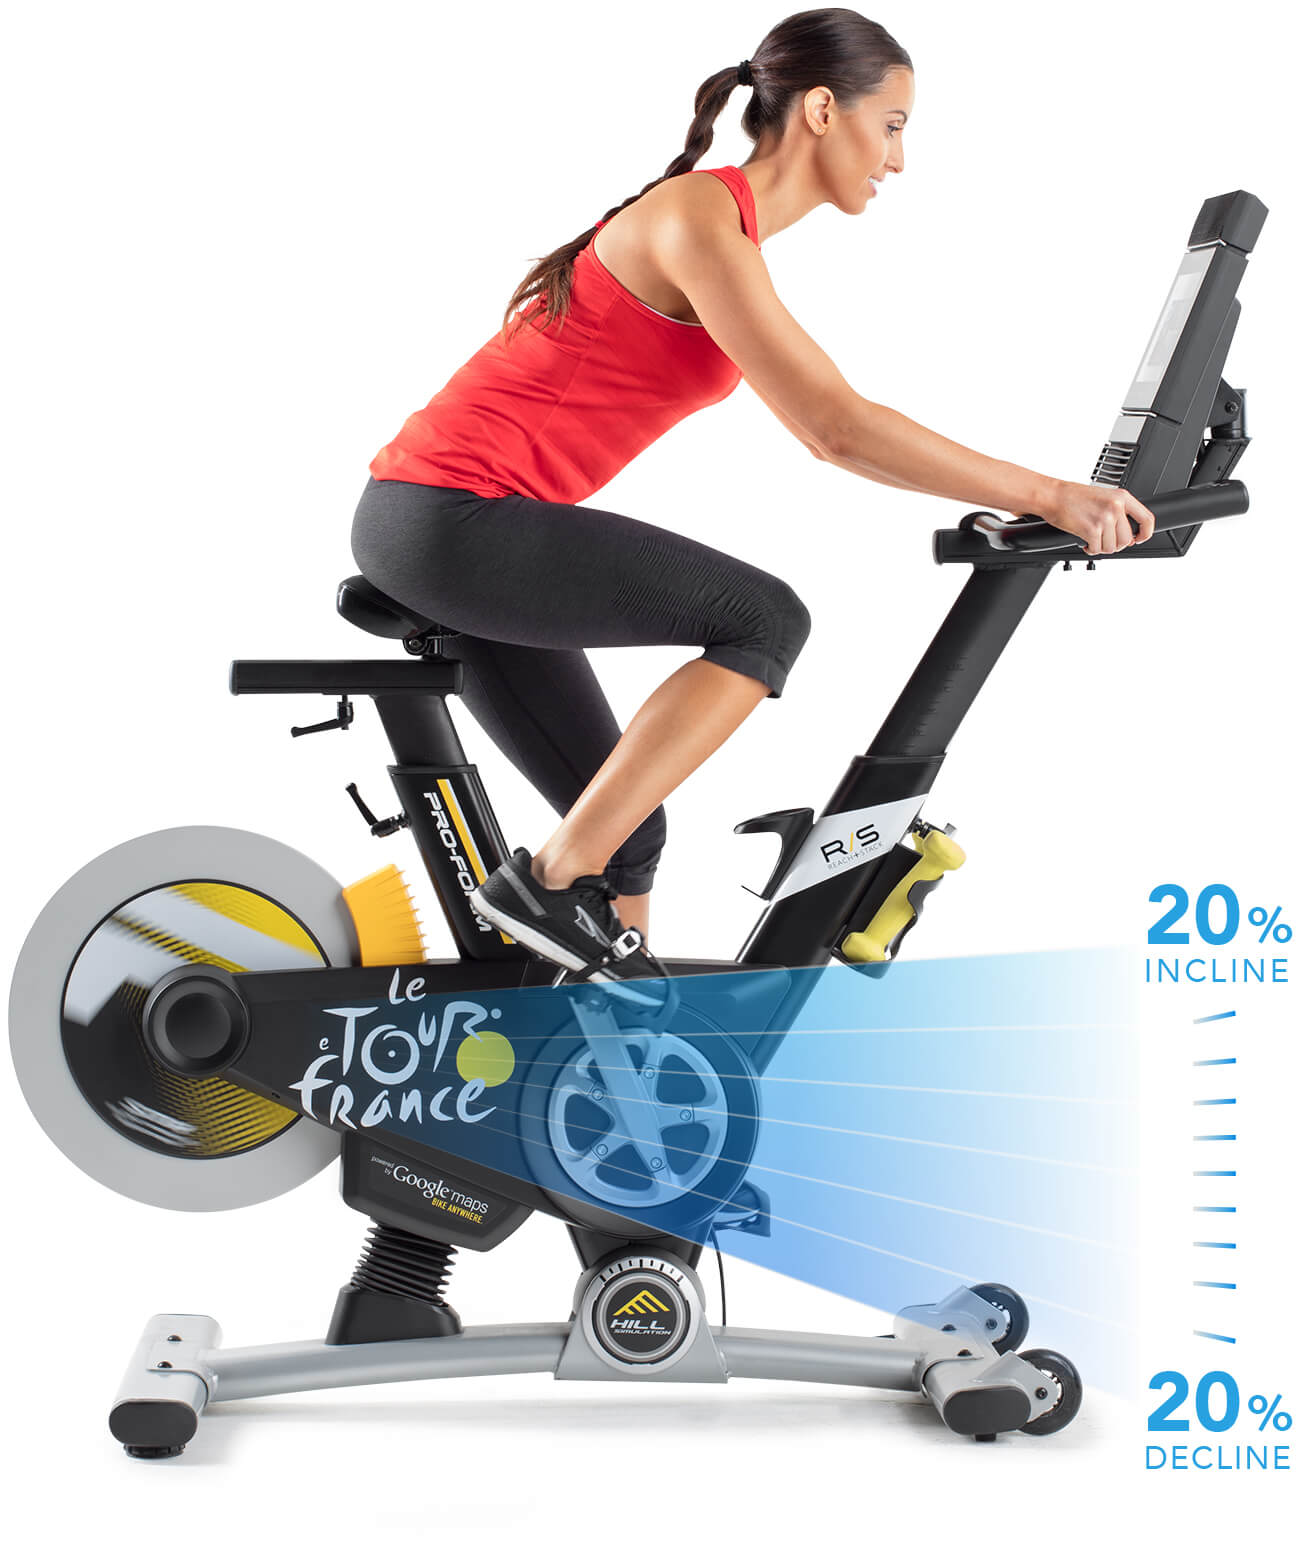 Bike with diagram showing that it can go from 20% incline to 20% decline